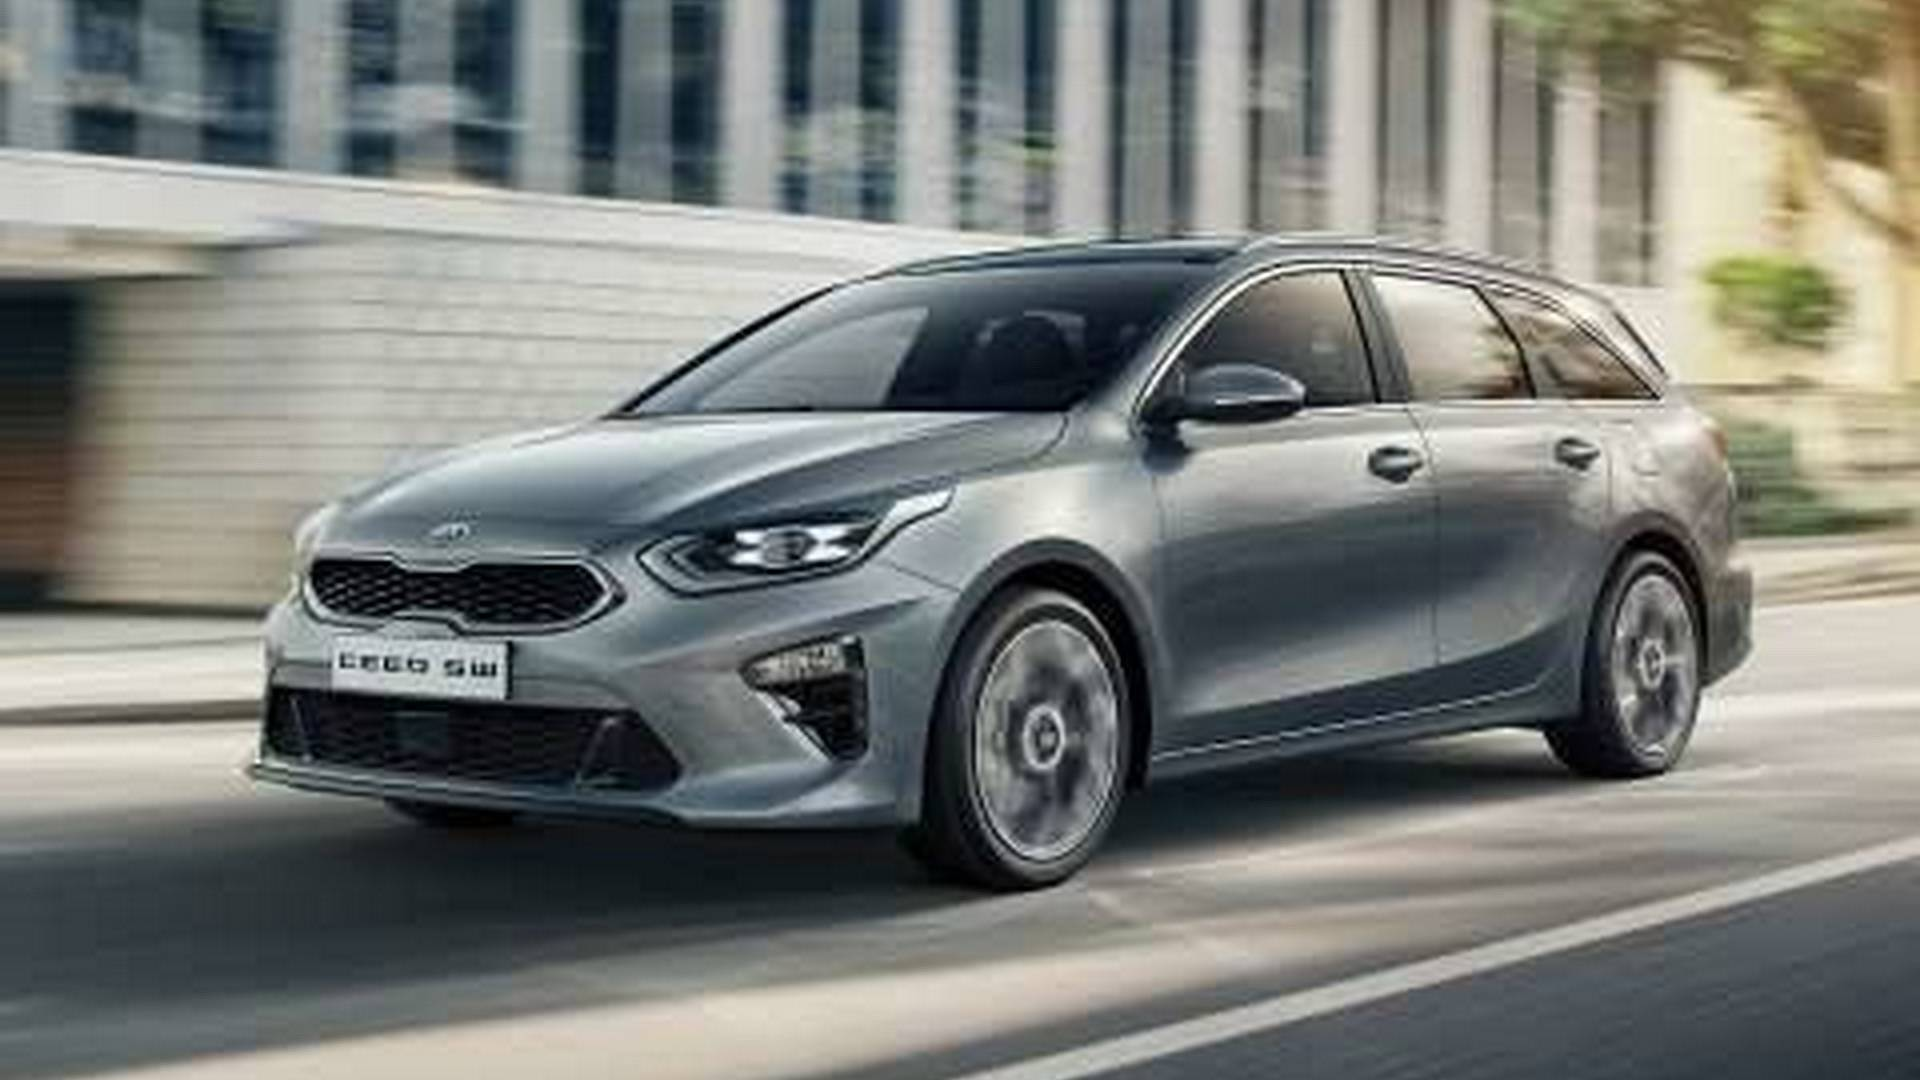 2018 kia ceed sportswagon leaked ahead of geneva debut autoevolution. Black Bedroom Furniture Sets. Home Design Ideas